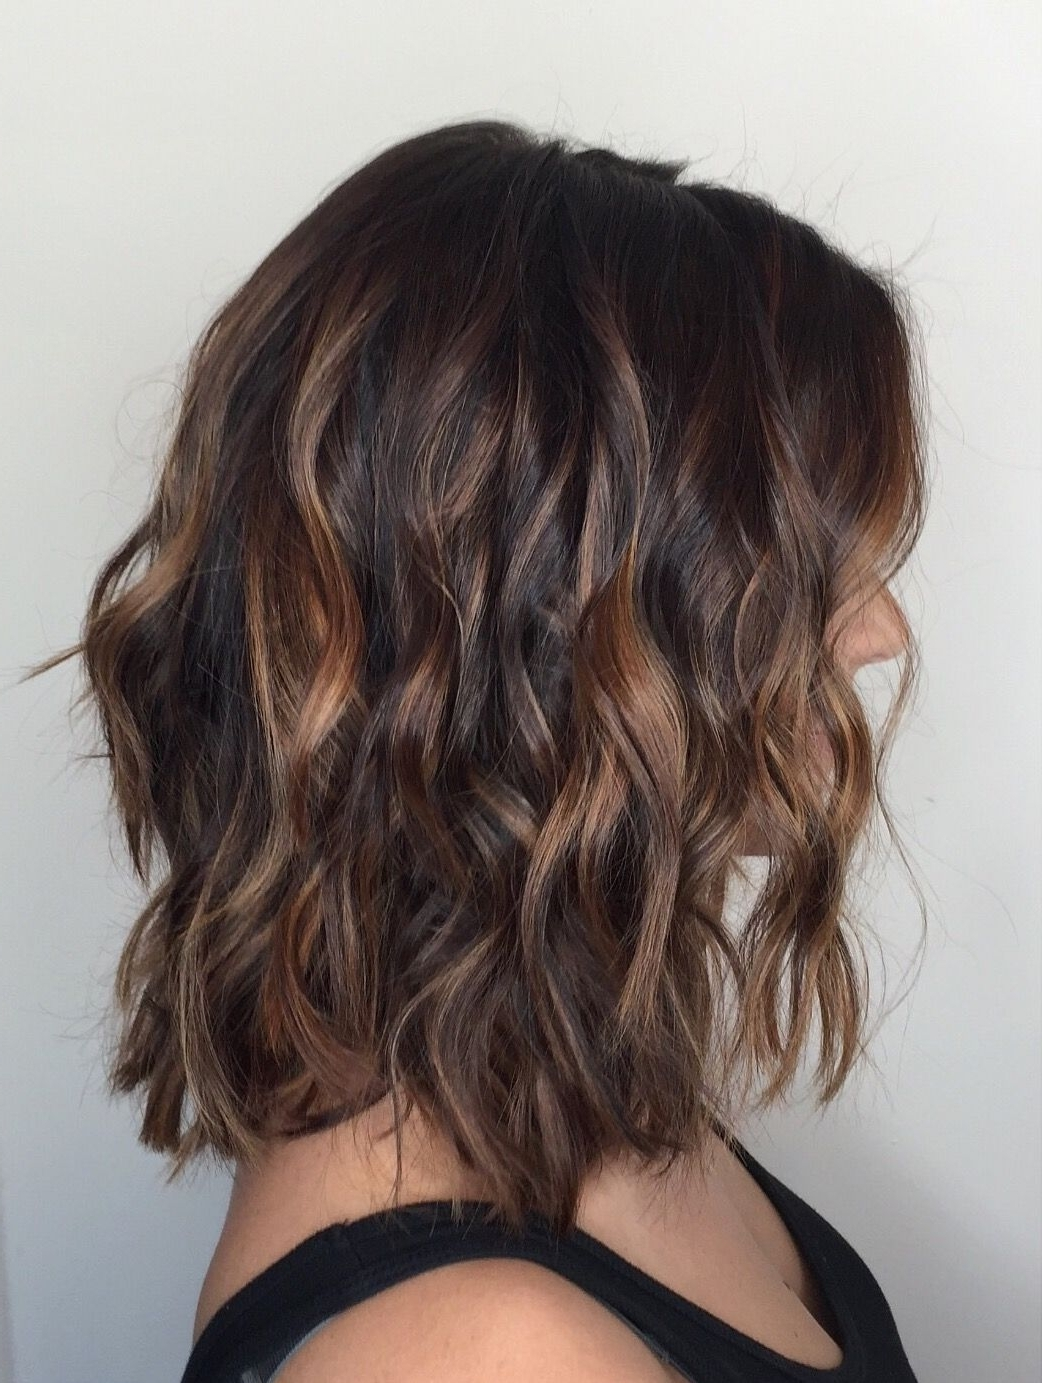 Explore Gallery Of Feathered Pixie Haircuts With Balayage Highlights